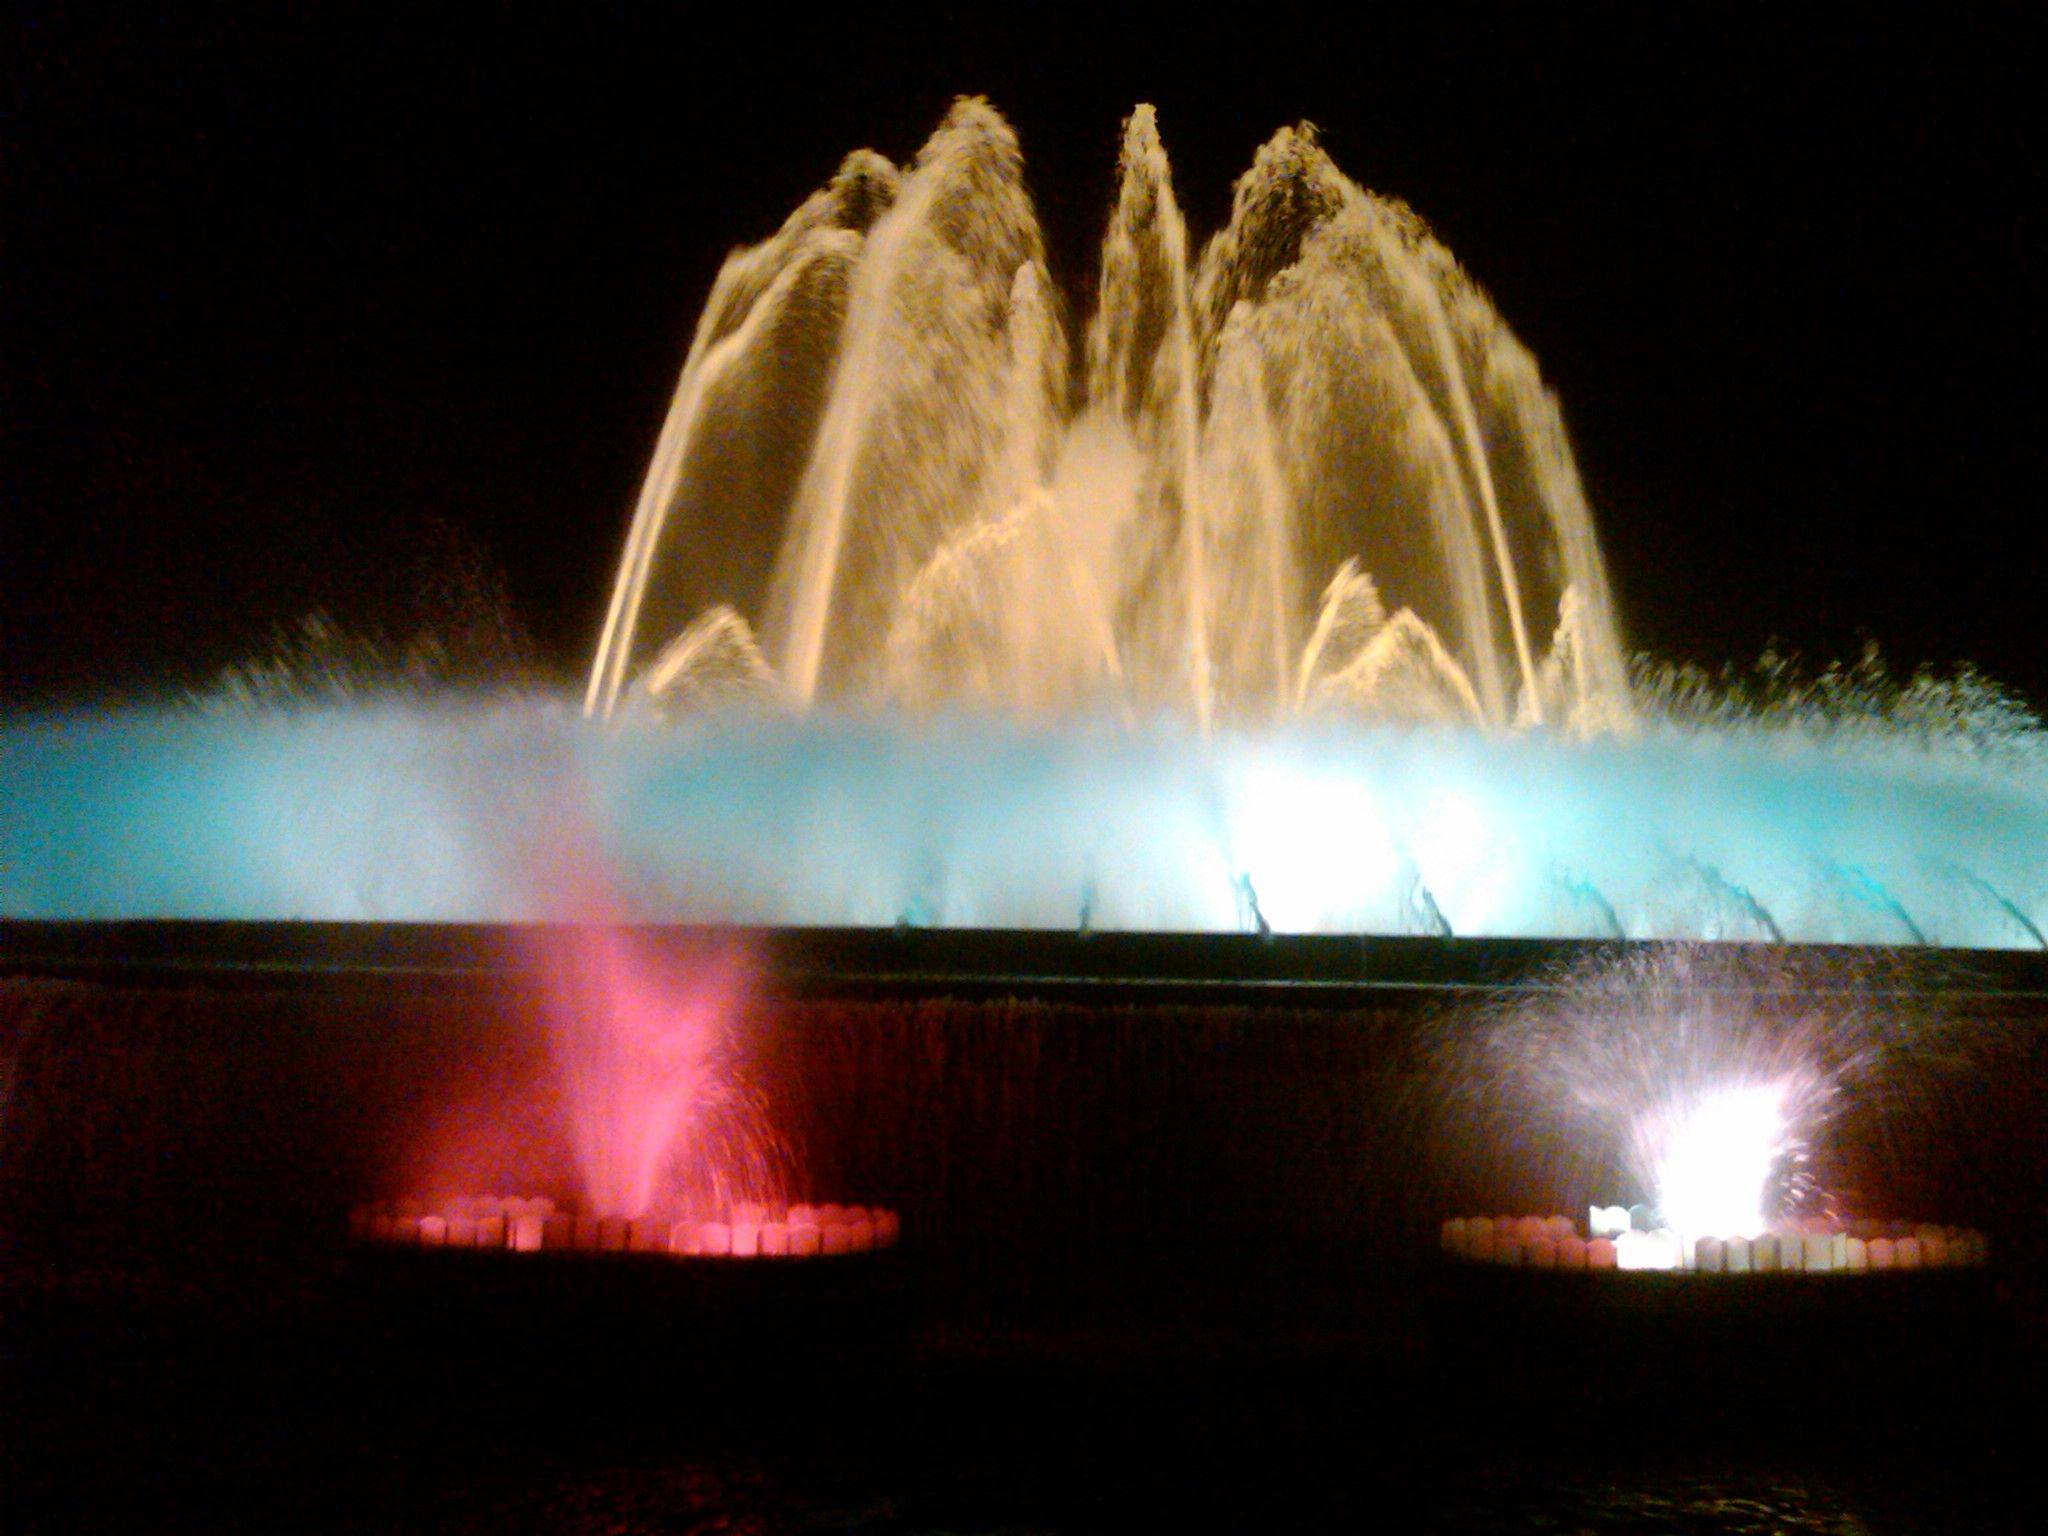 The role of symbolic fountains of wellbeing http://fr.slideshare.net/prmark3/wellbeing-in-air-traffic-control-19676487